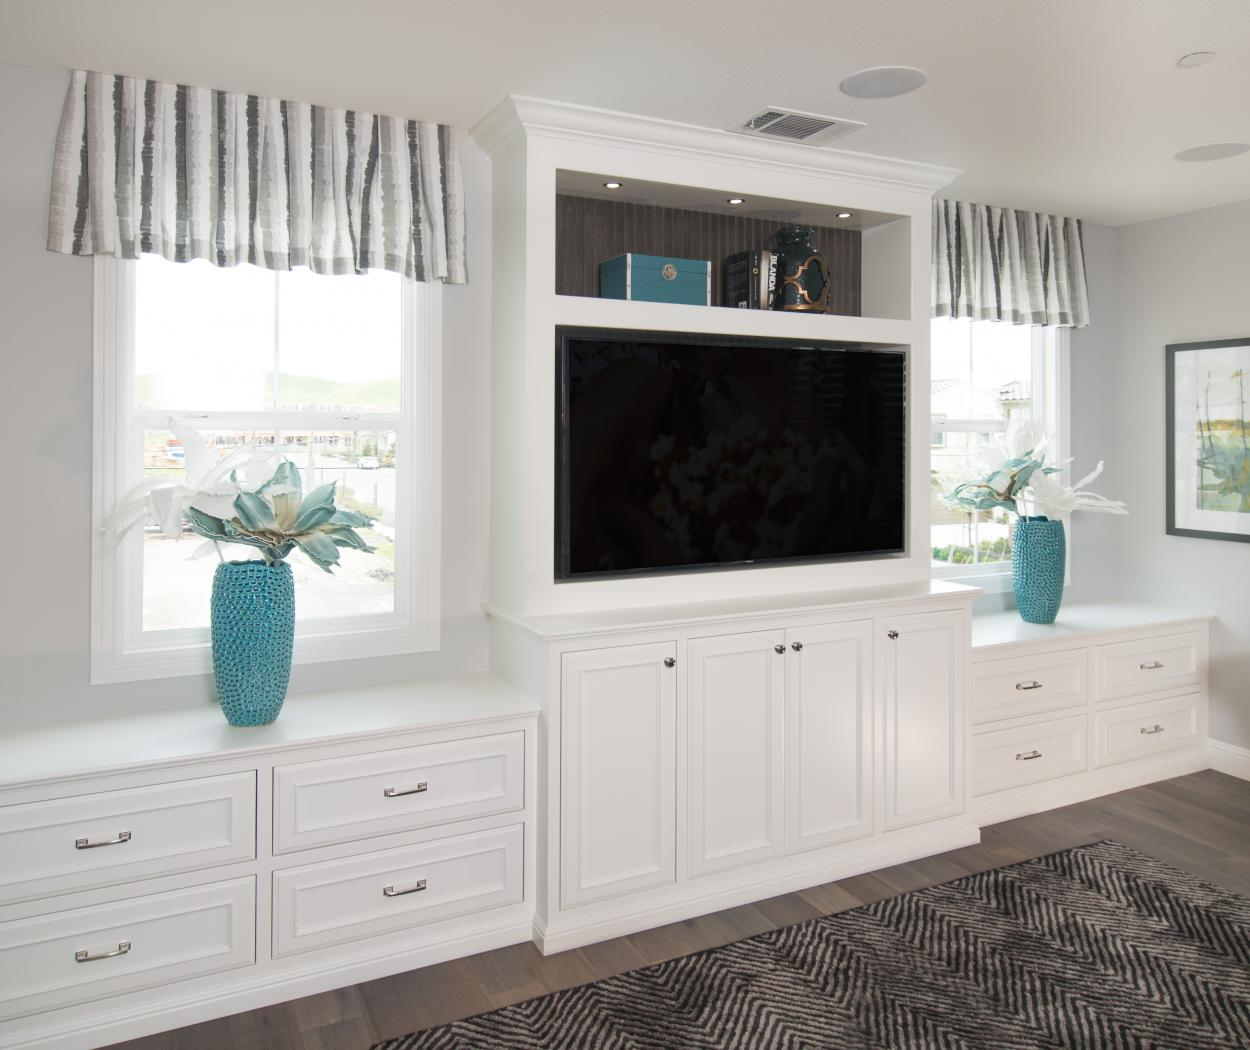 Beautiful White Entertainment Center with a Stained Beadboard Back and Silver Knobs - Pulls